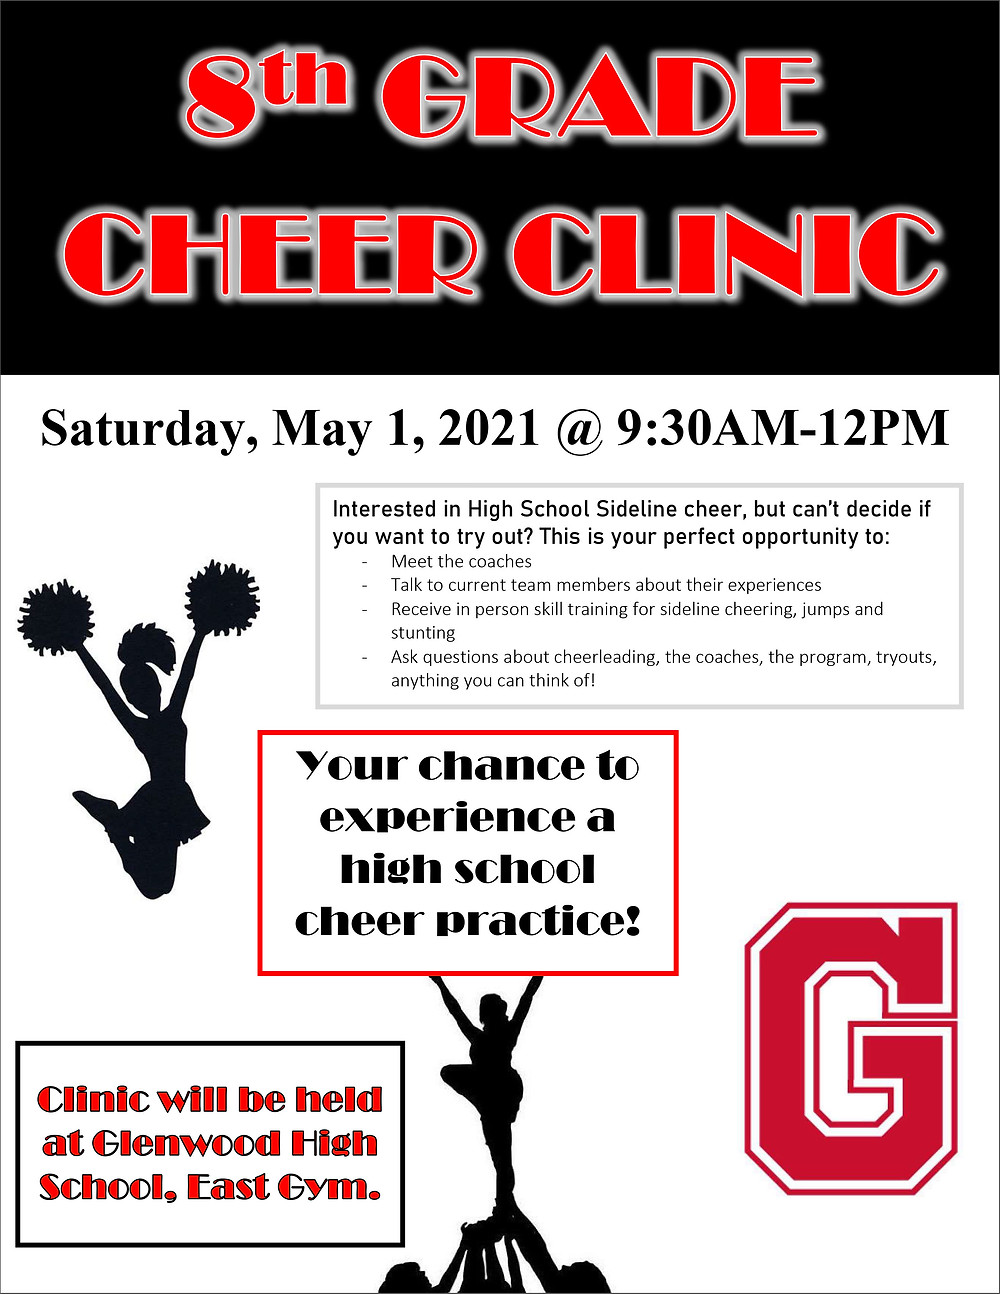 8th grade cheer clinic flyer